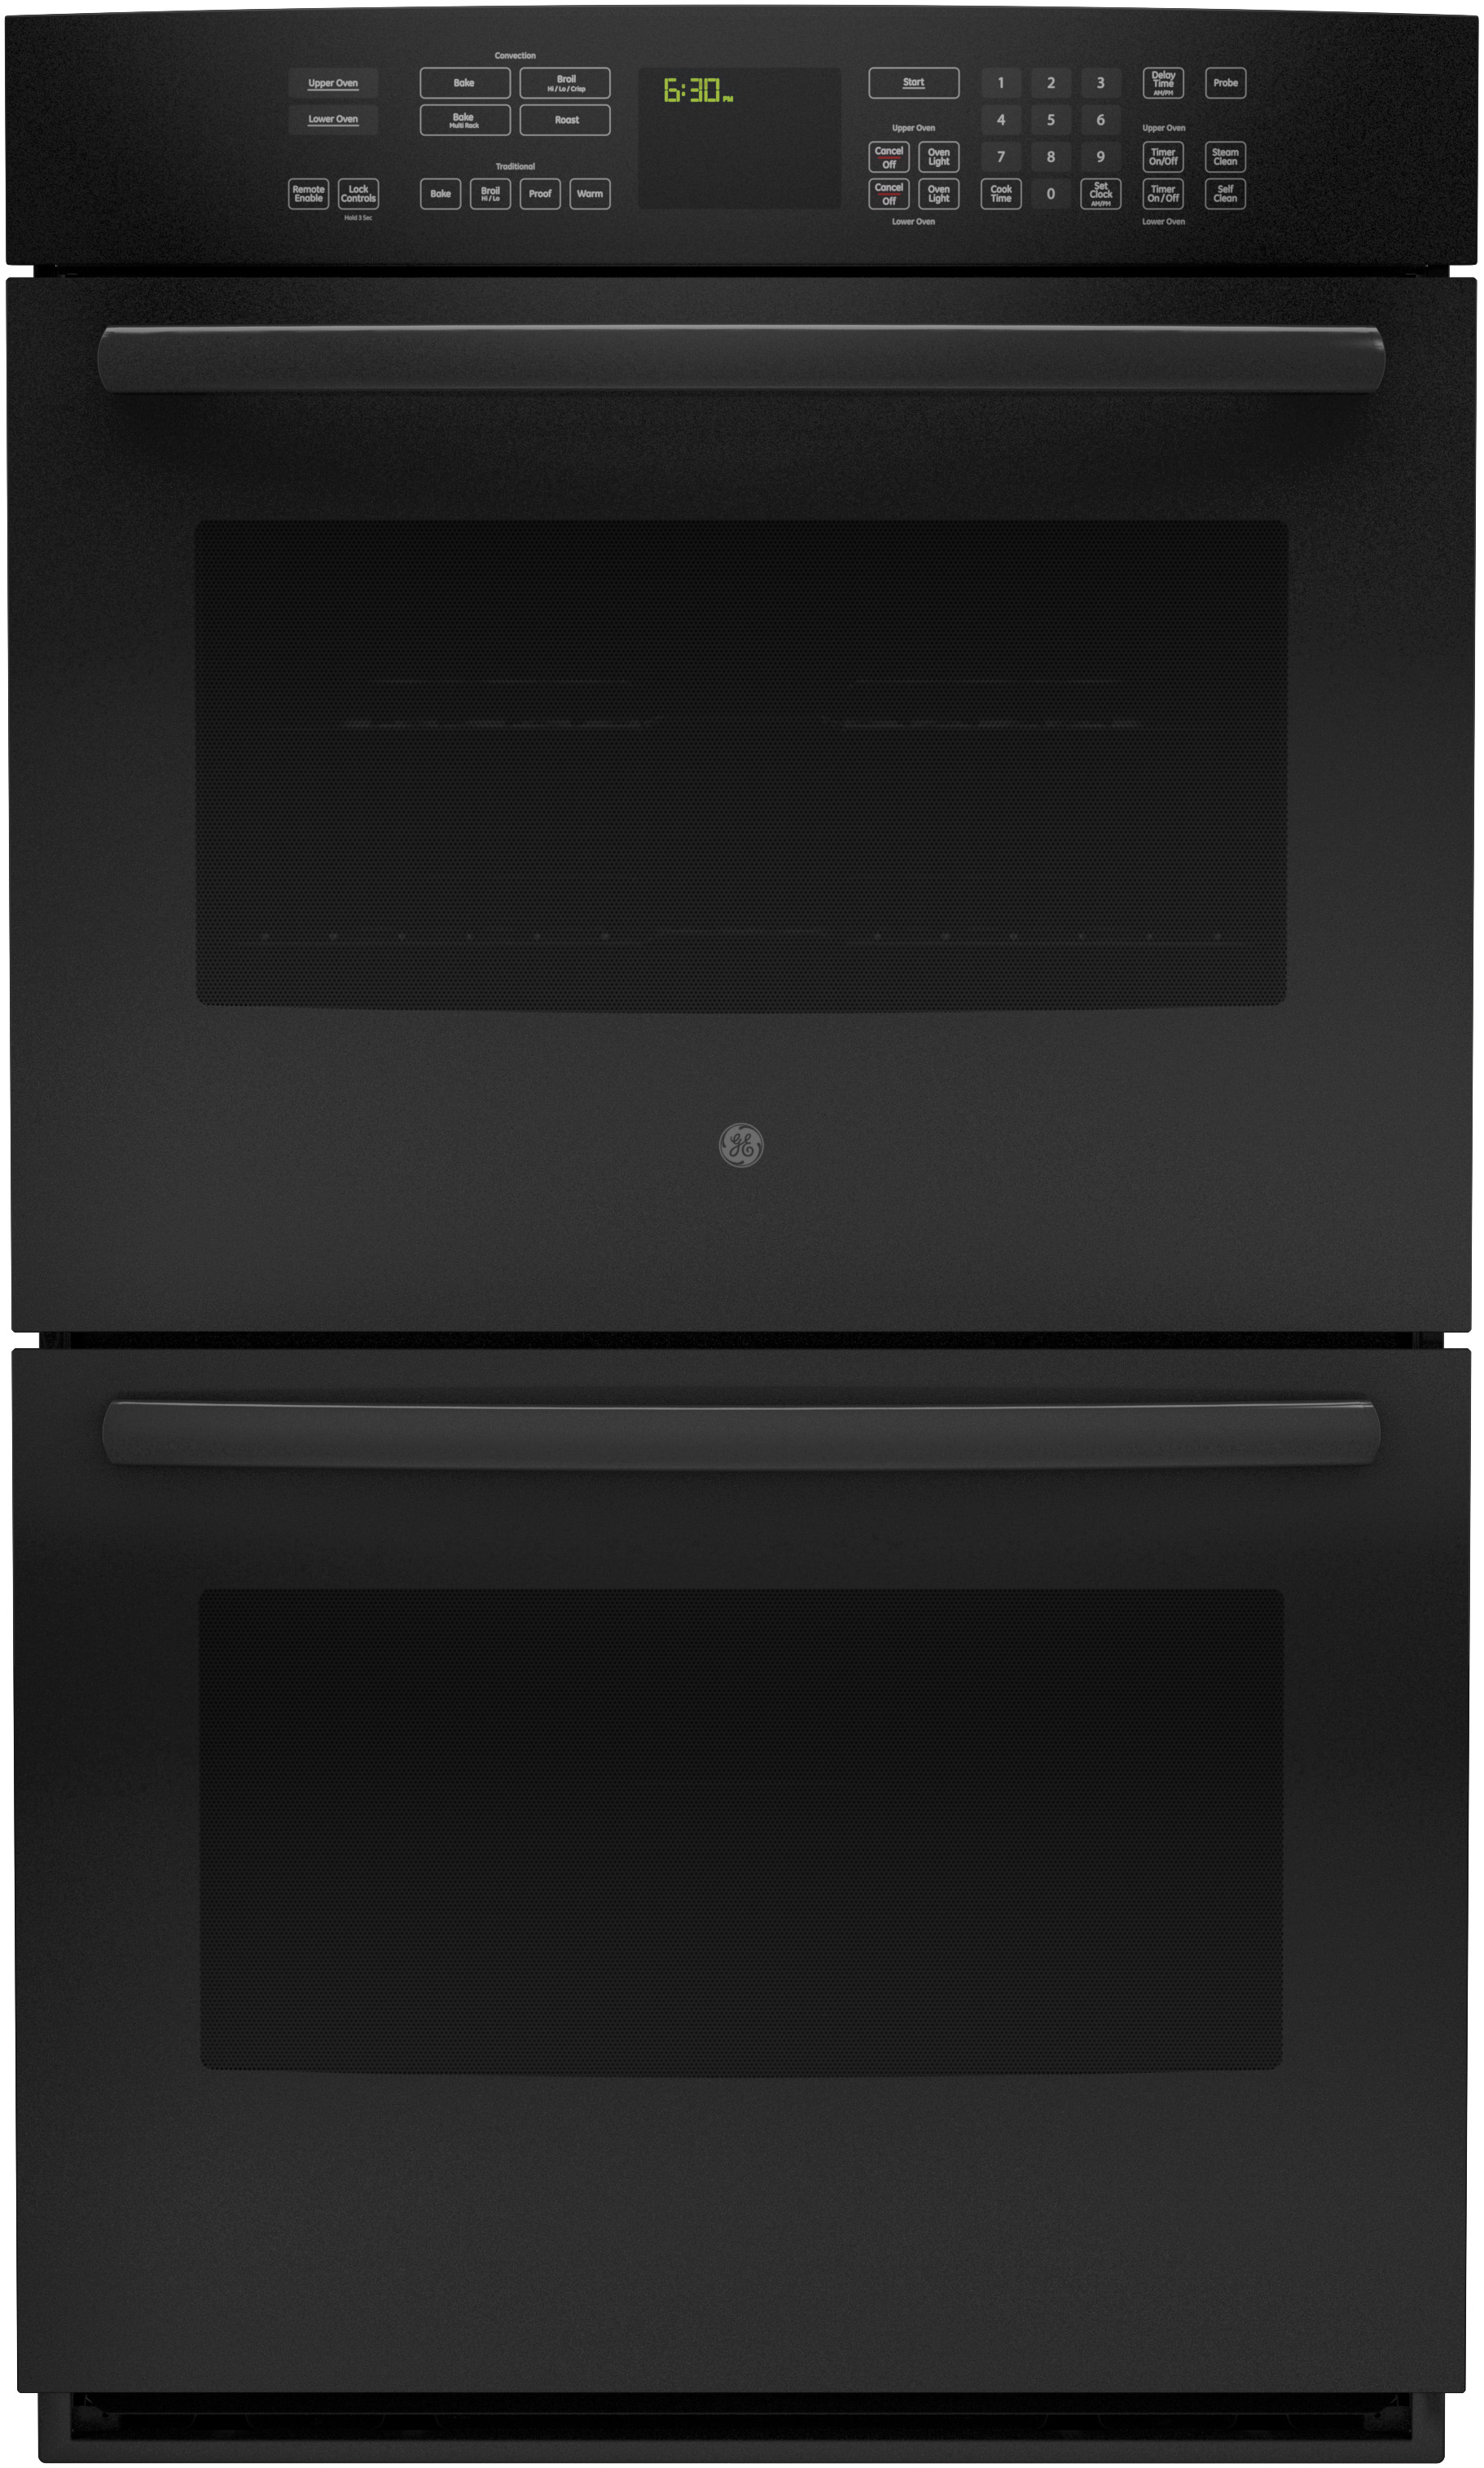 hight resolution of ge double wall oven